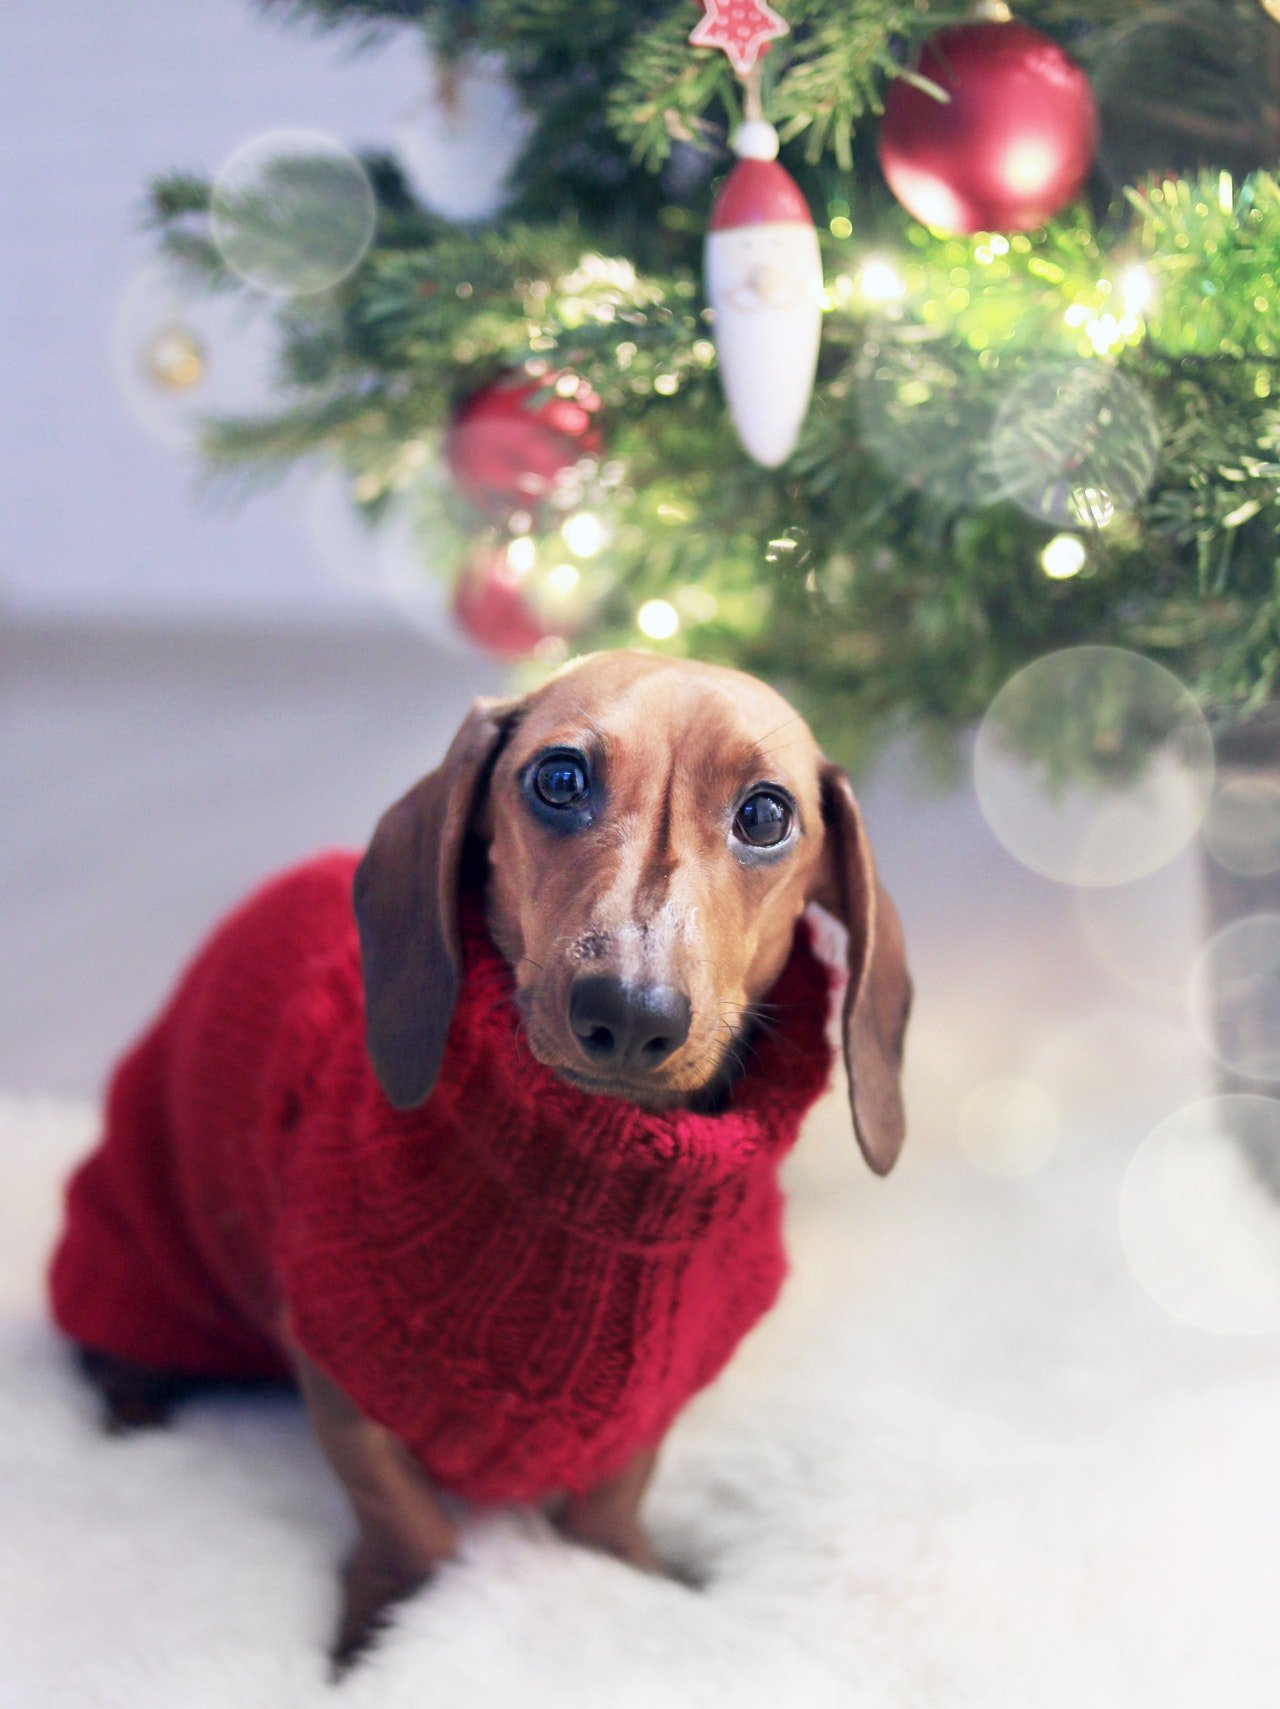 Dachshund wearing a red sweater in front of a Christmas tree.